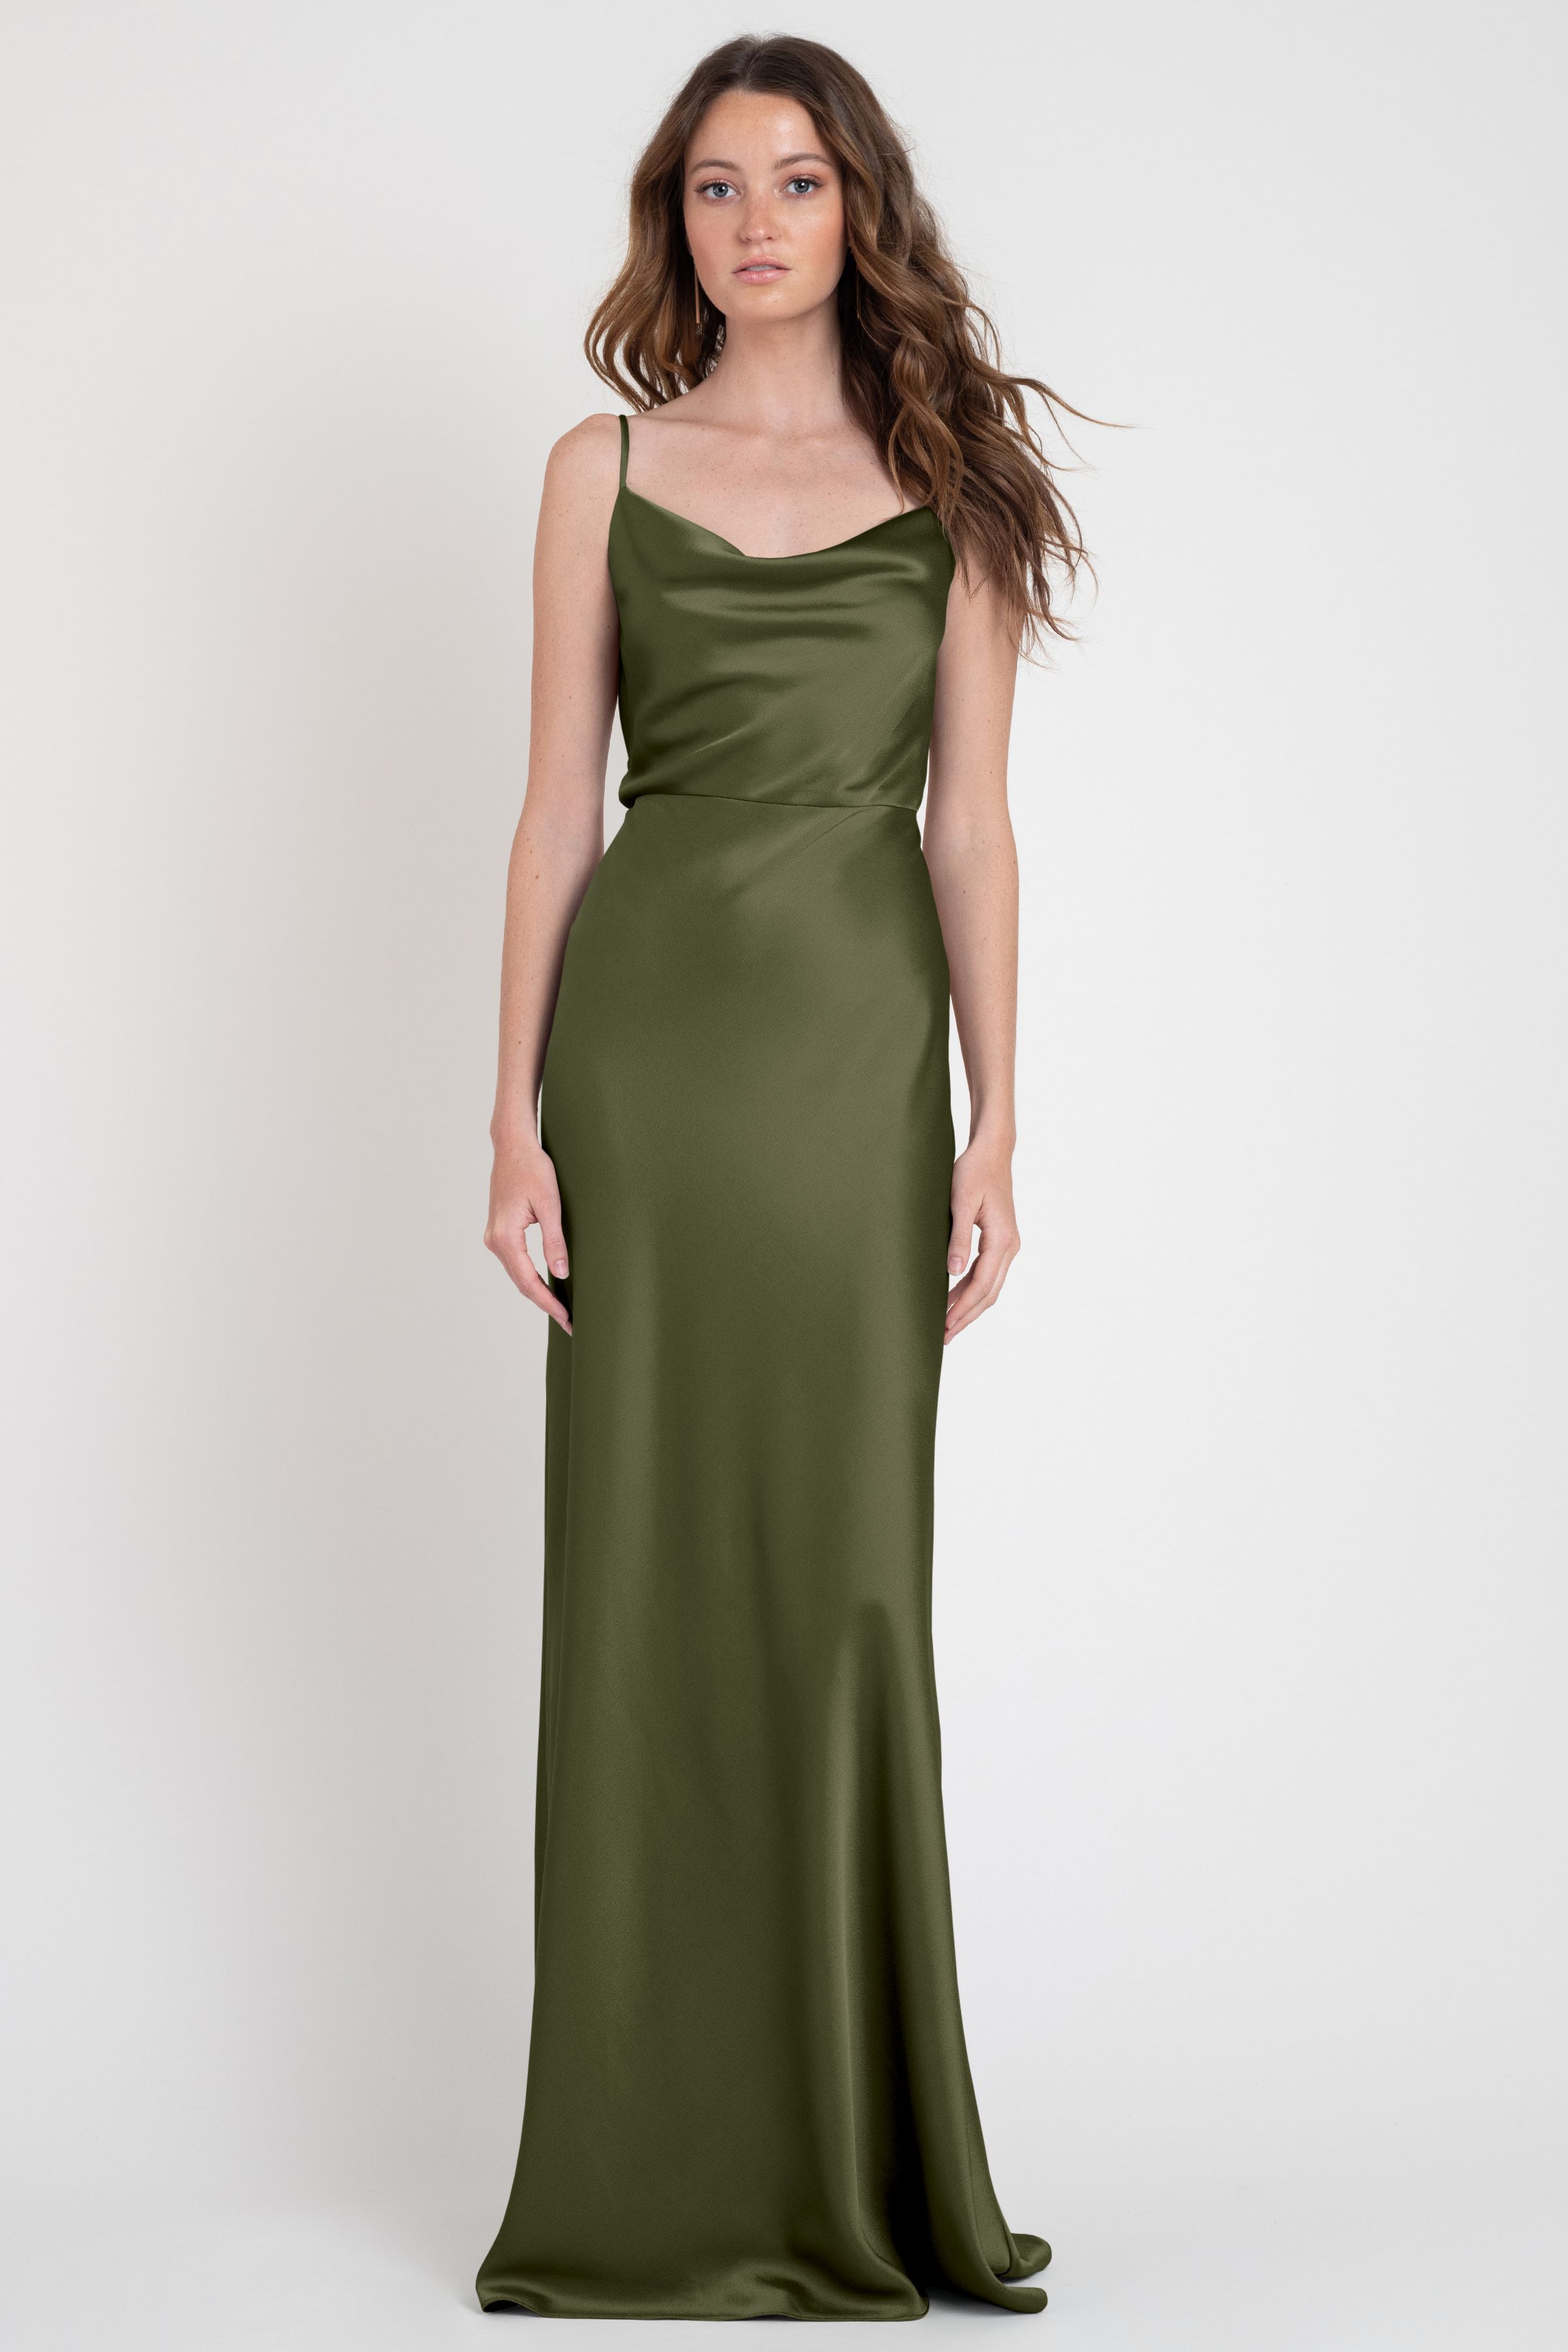 Channel Old Hollywood vibes in this stylish slip dress with a show stopping fit. Details: Cowl neckline Luxe Satin Bias cut skirt Full length Lined bodice Invisible center back zipper